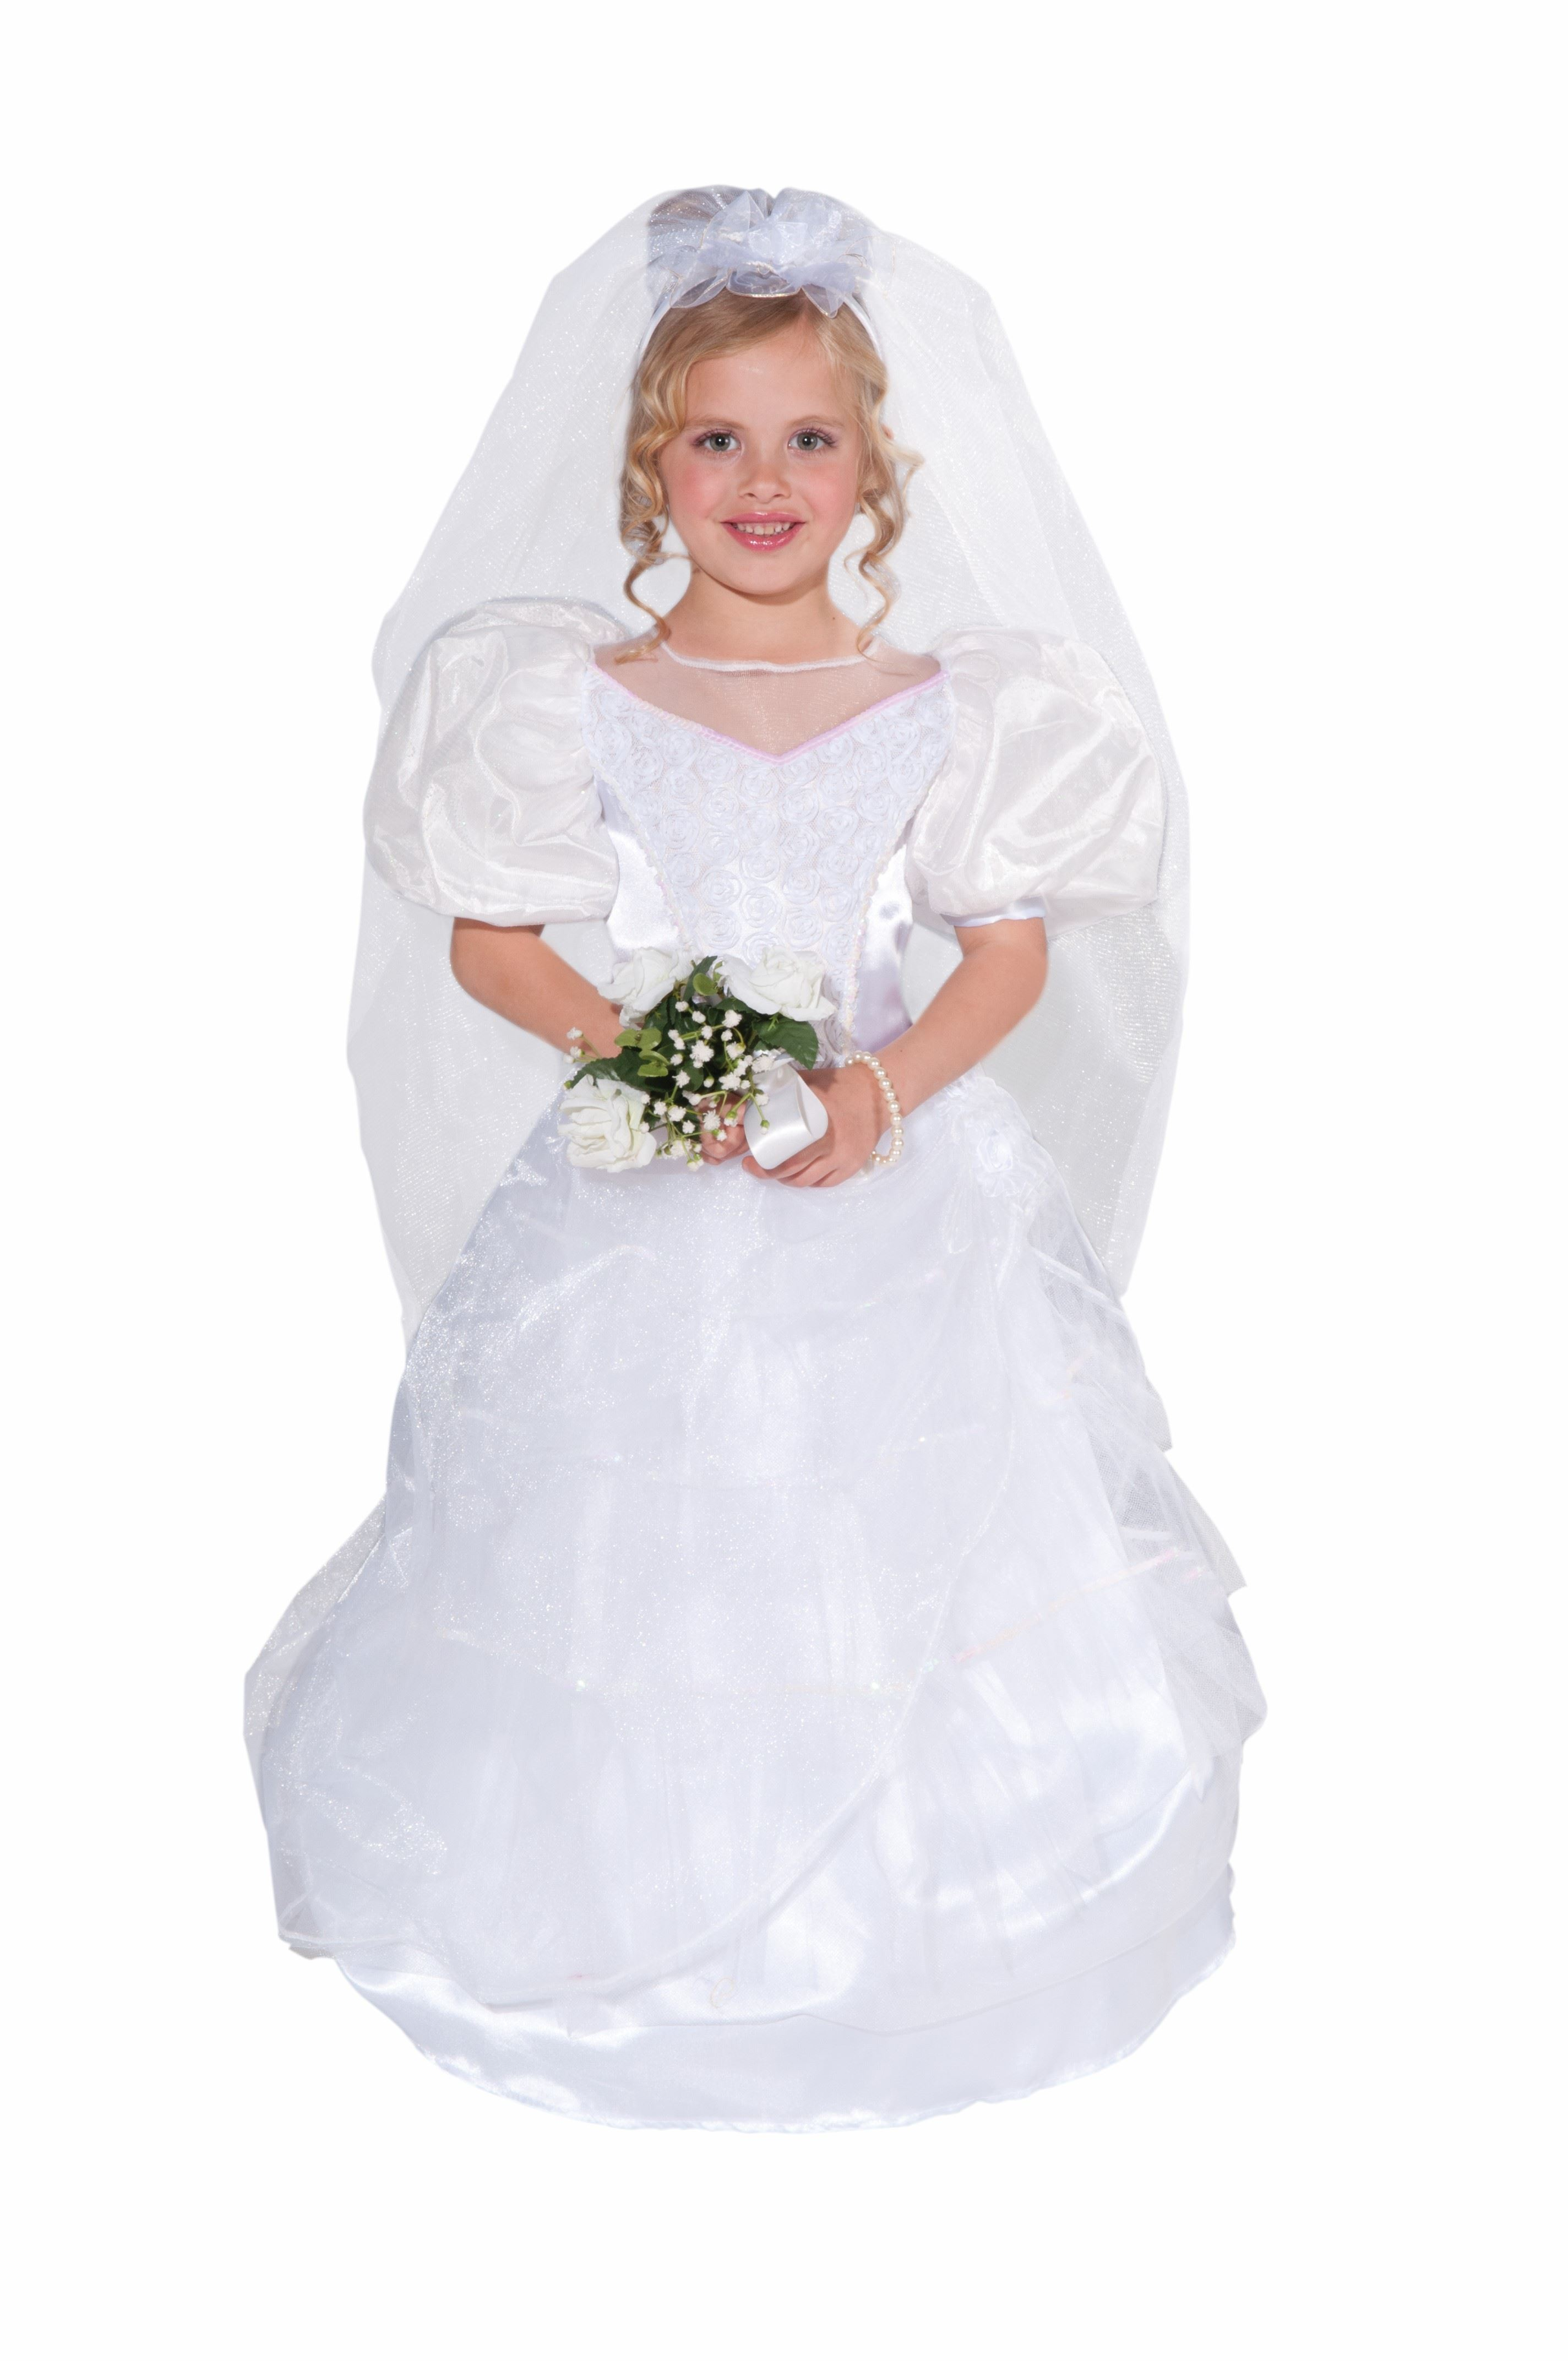 kids deluxe girls wedding gown costume | $31.99 | the costume land